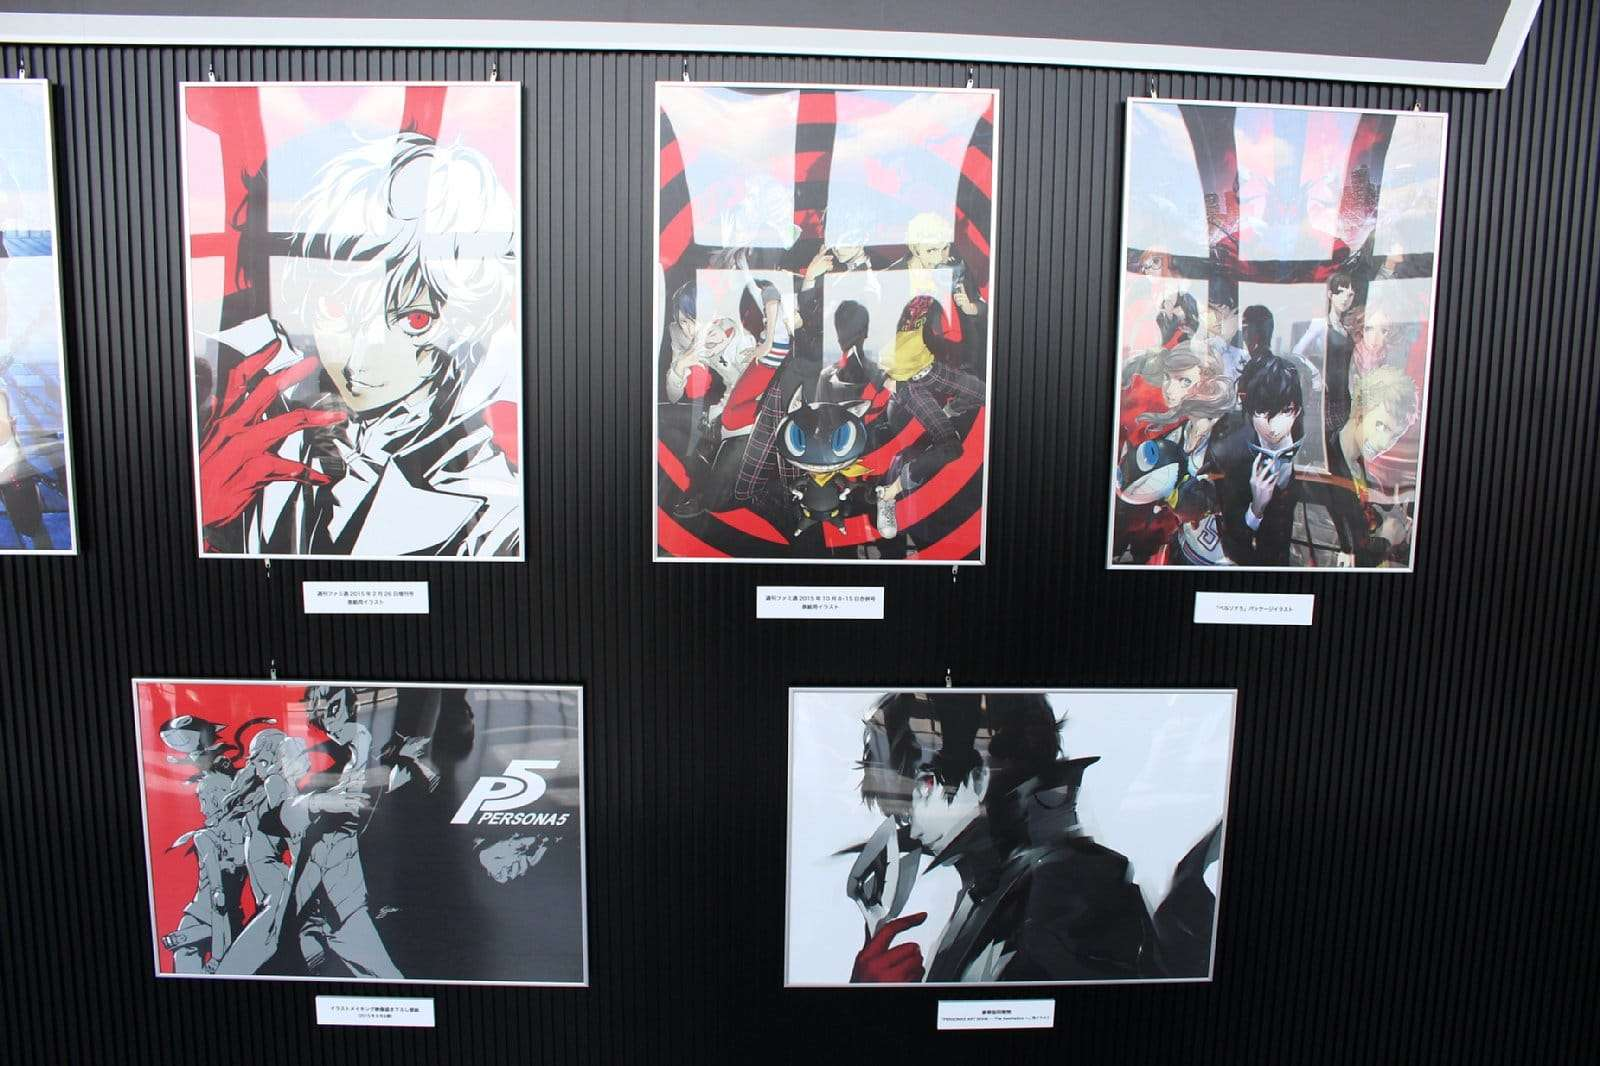 Various Visuals Are Placed In A Persona 5 Exhibition Corner One Of Them Is The Cover Art Book Bundled With Limited Edition Which Can Be Seen